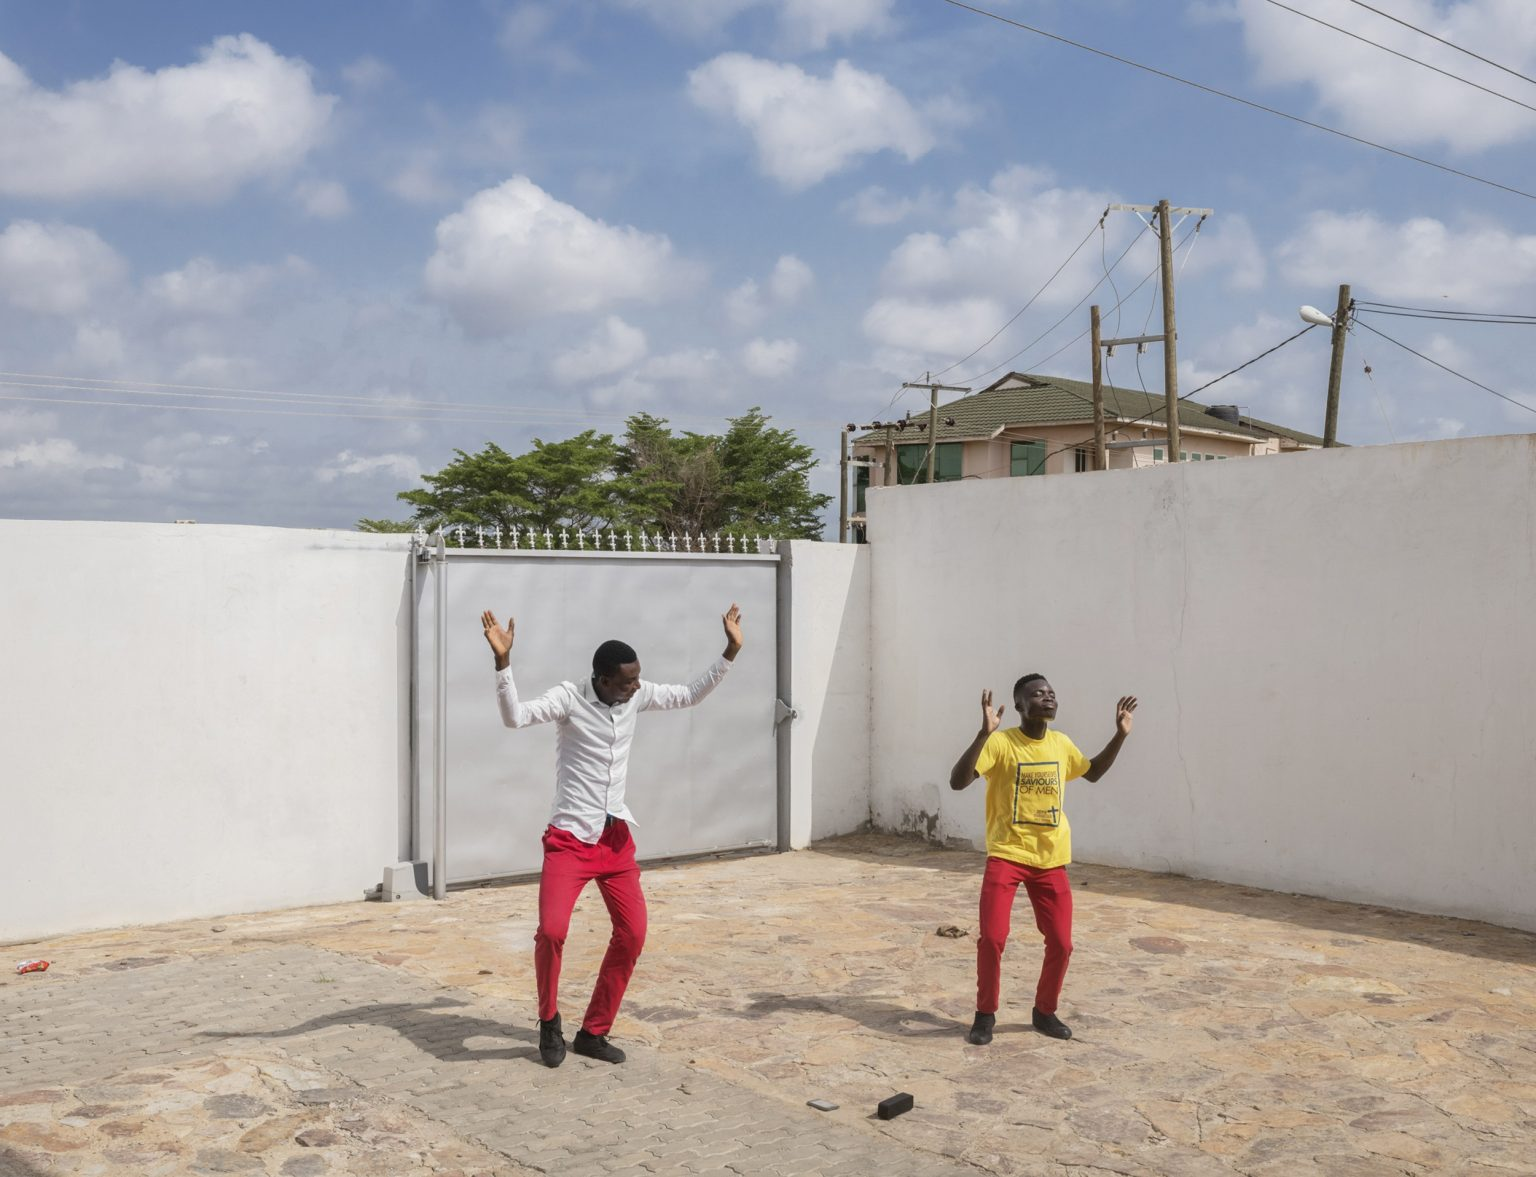 """Republic of Ghana, Greater Accra Region, April 2019: young worshipers dancing in the courtyard of Qodesh Family Church, The Qedesh, a Lighthouse Chapel International branch located in East Legon Hills and inaugurated in 2017.According to a Pew Research Center's report titled """"The Age Gap inReligionAround the World"""", Georgia and Ghana are the only two countries in the world where young people aged 18-39 are more religious than those aged 40 and above.*Stitched photograph*"""